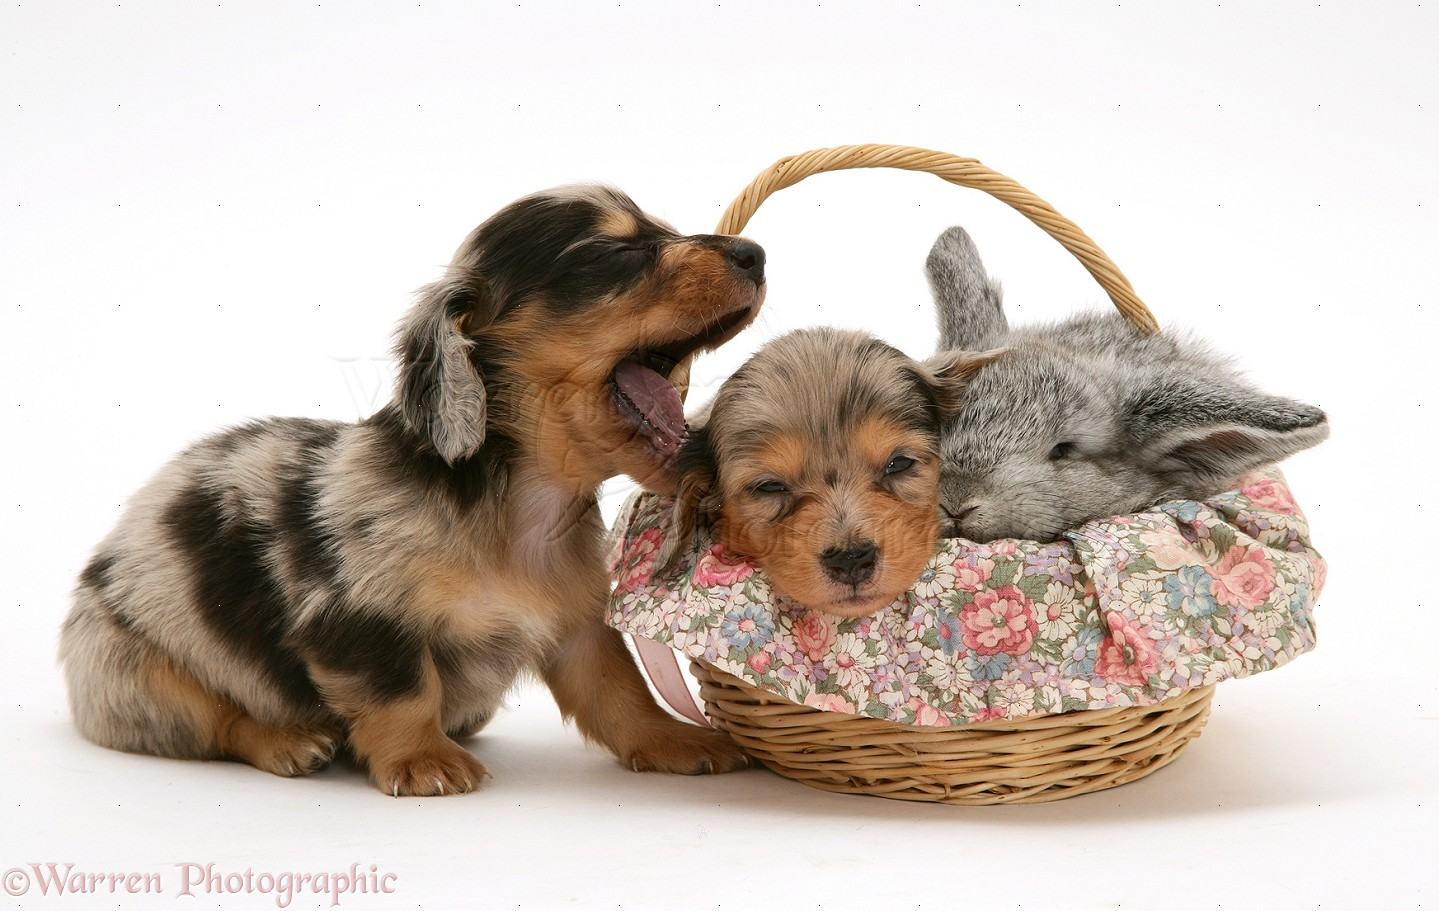 Dachshund and pet rabbit